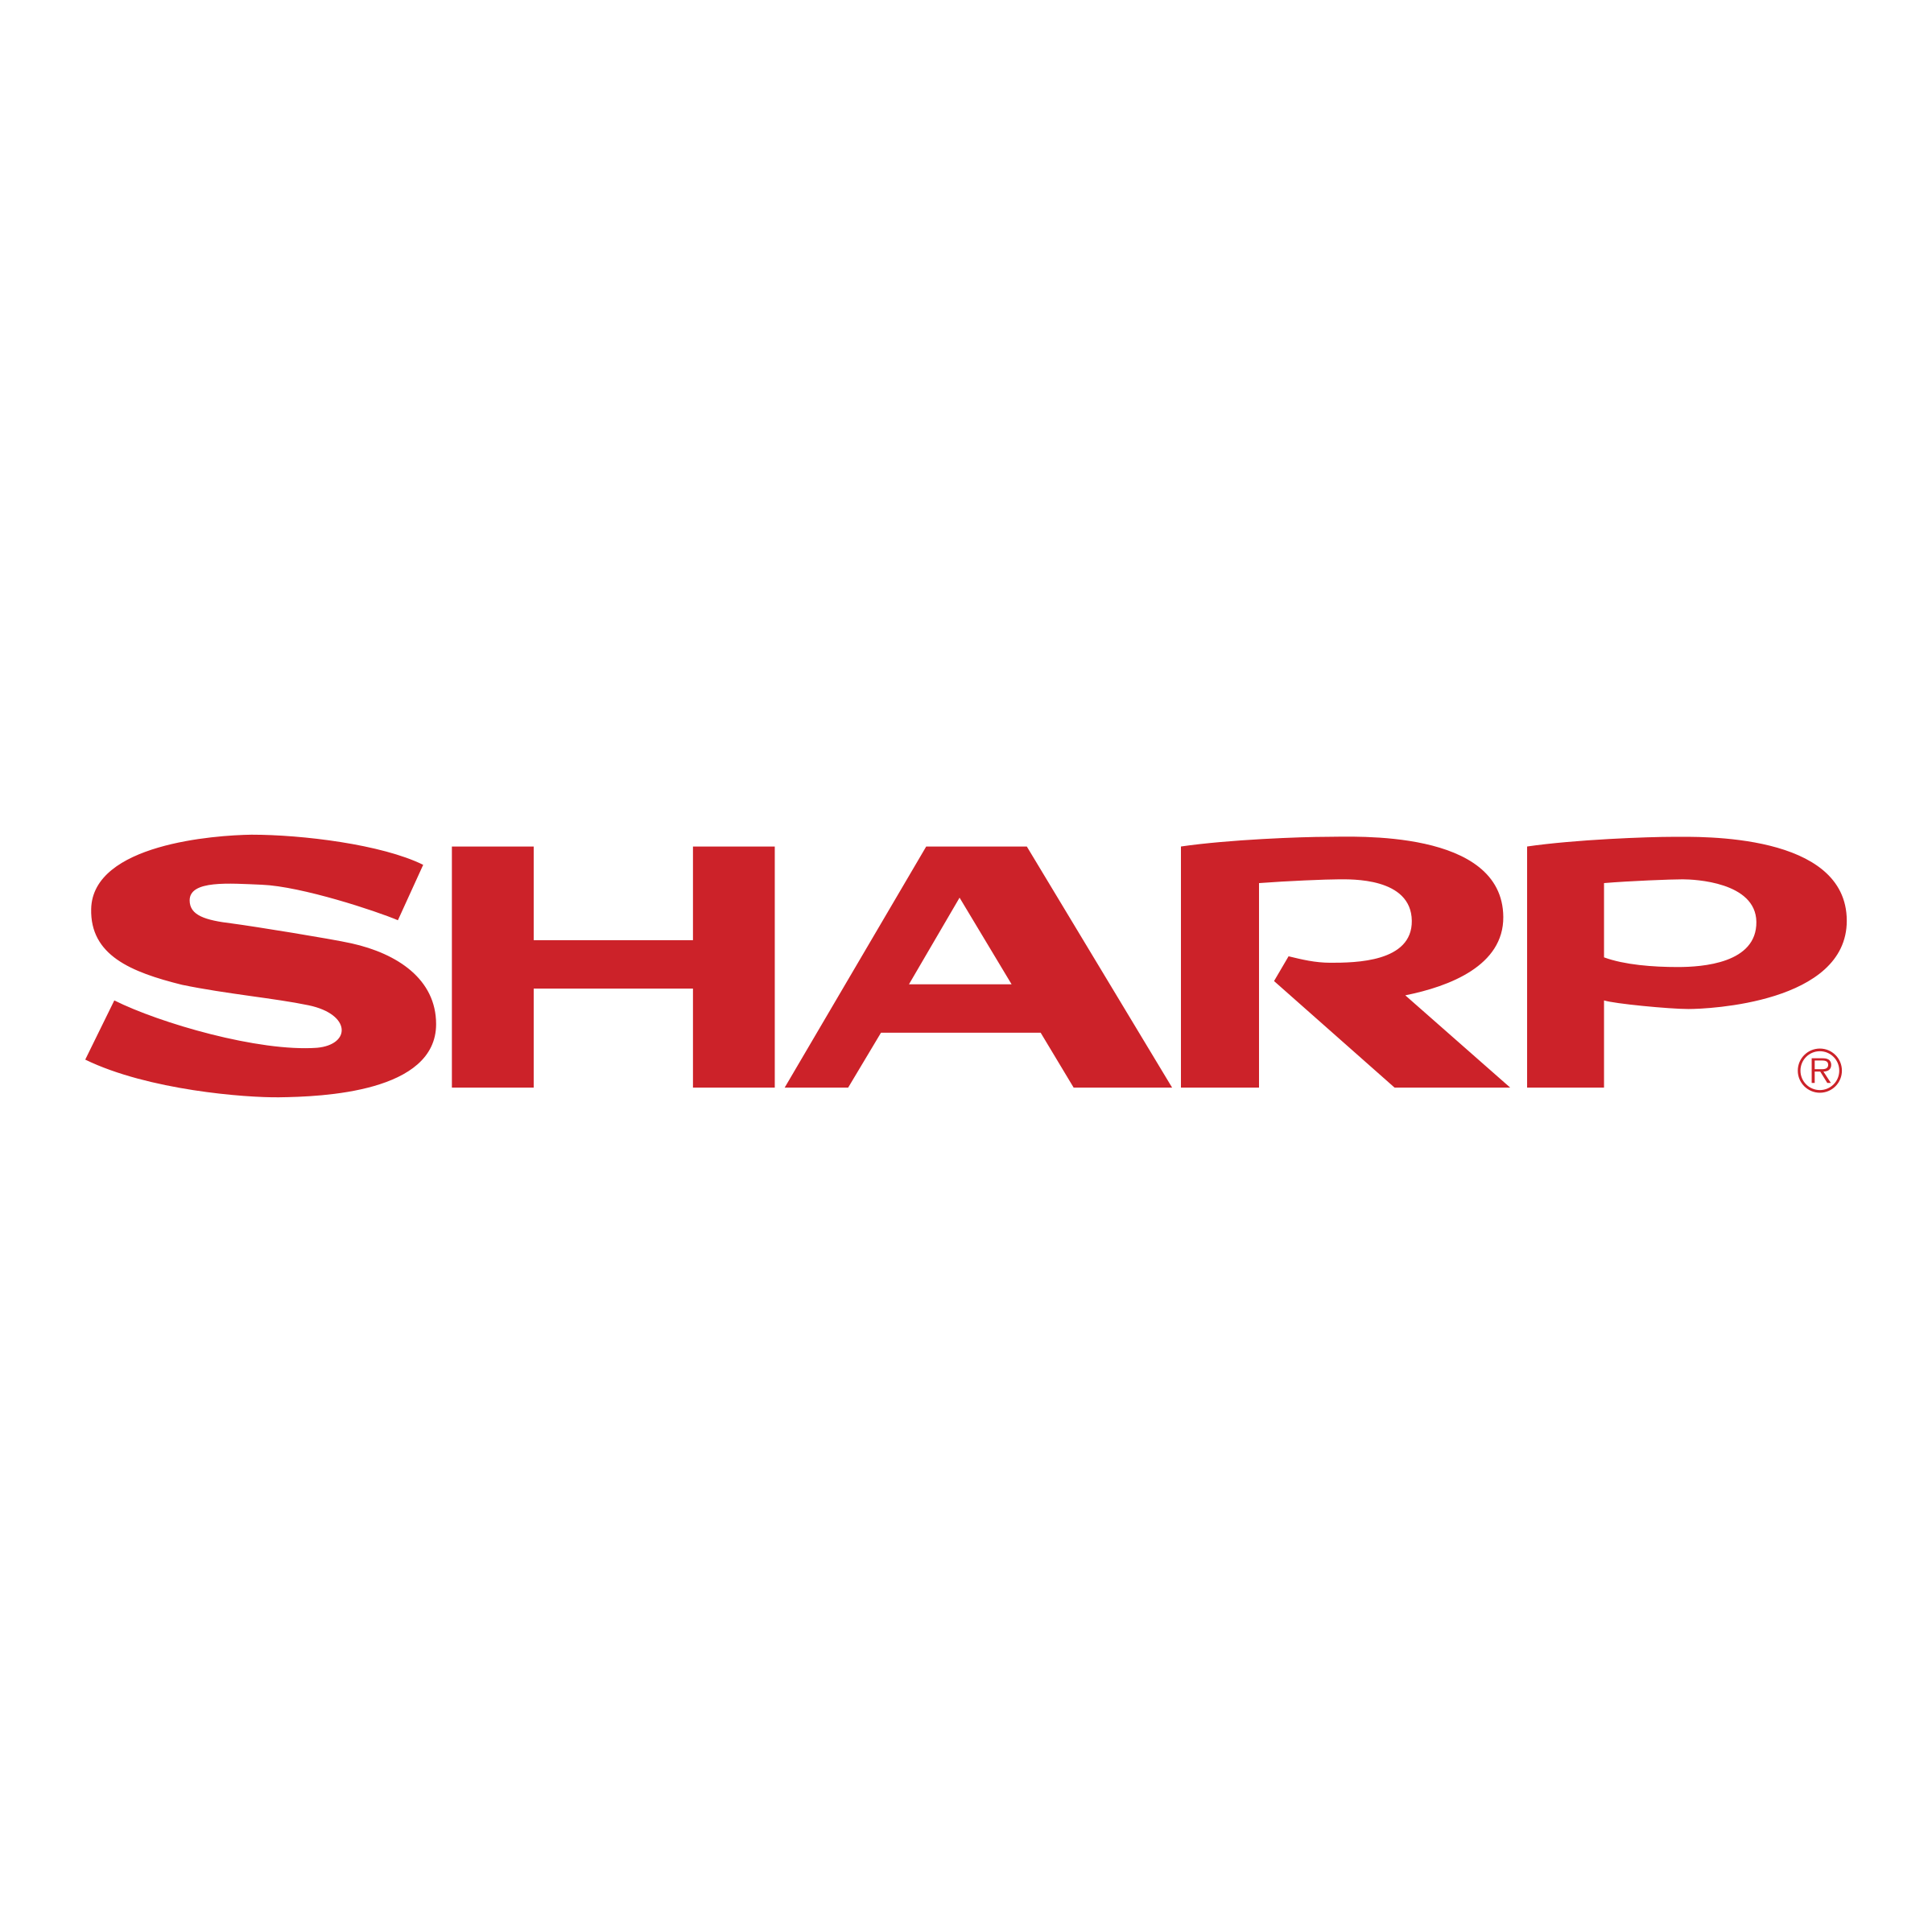 sharp-fnke-marketing